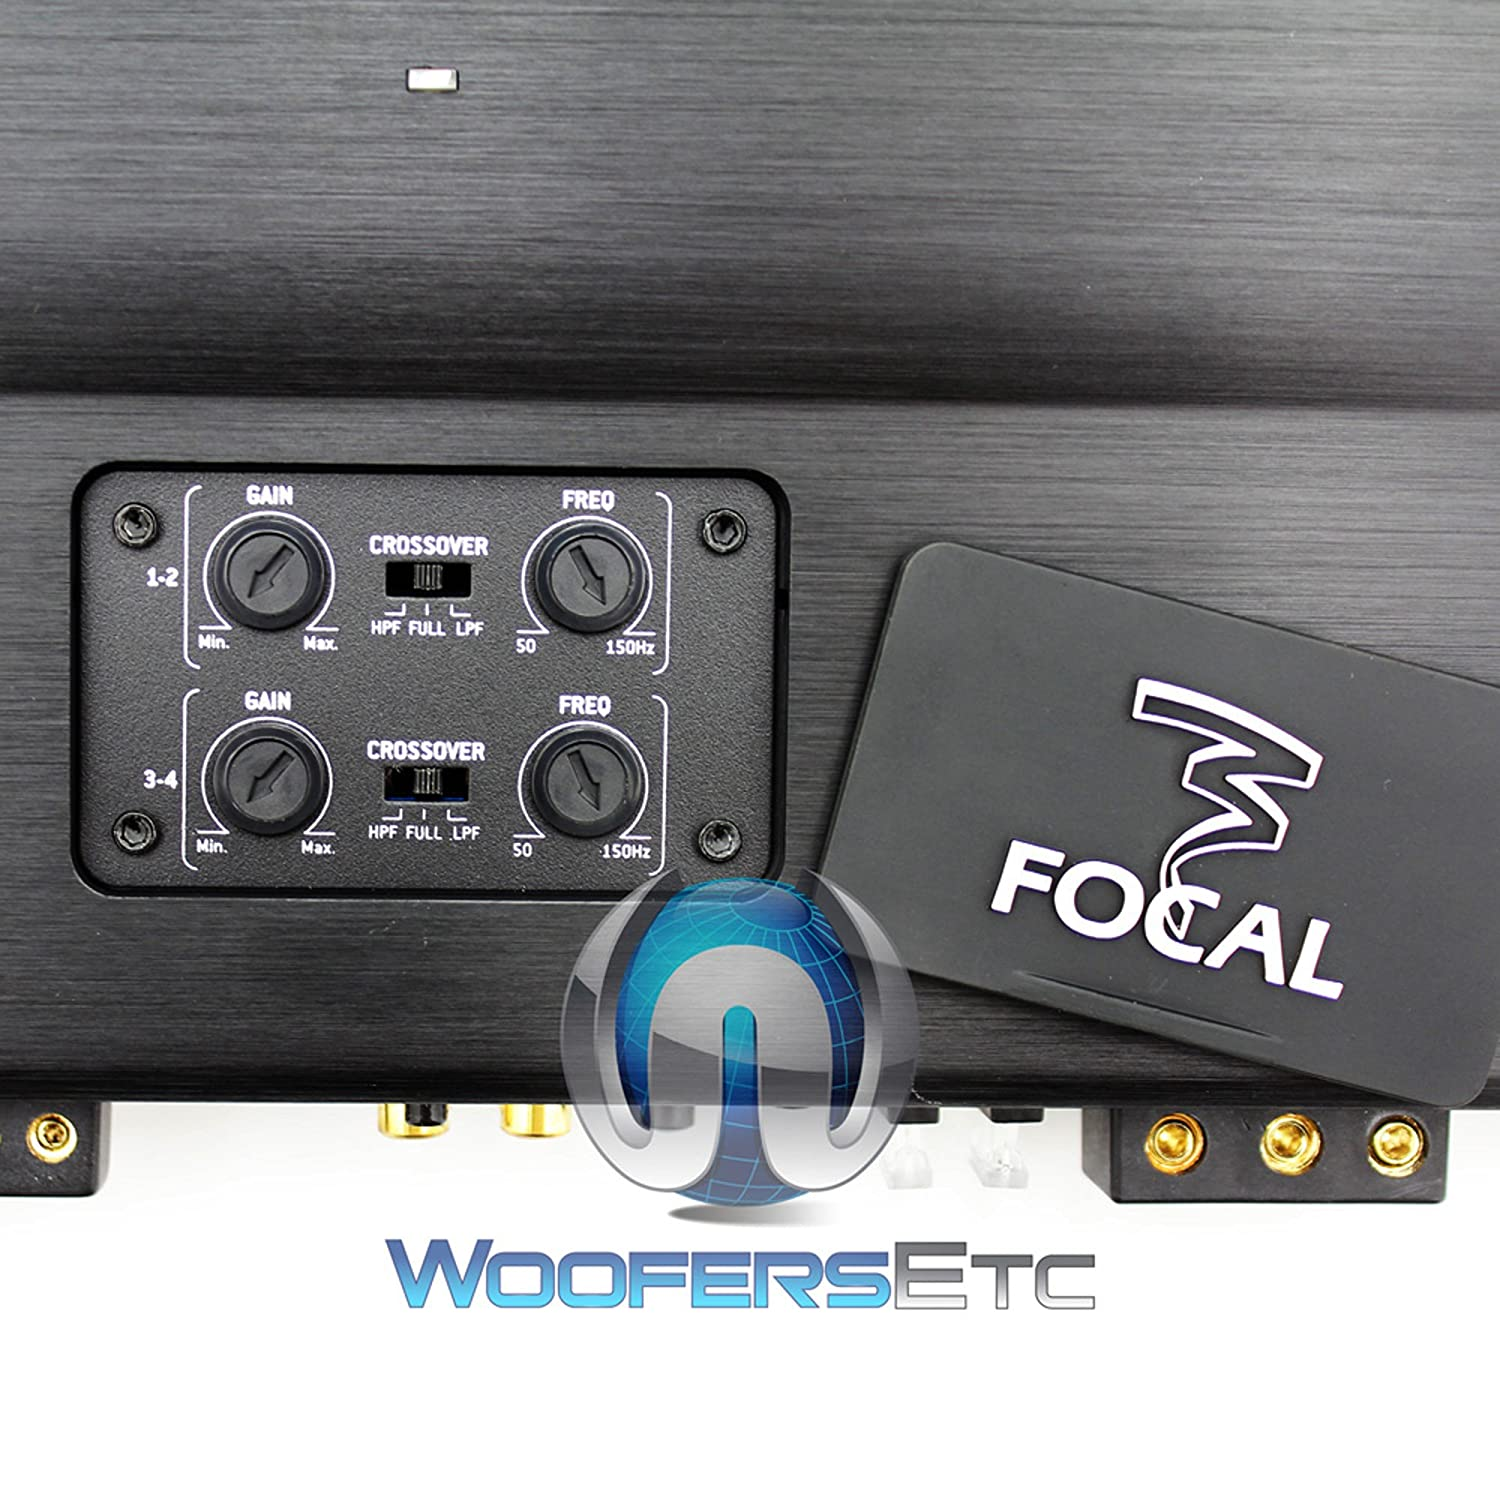 Amazon.com: FPP 5300 - Focal 5-Channel 500W RMS FPP Series Amplifier: Car Electronics